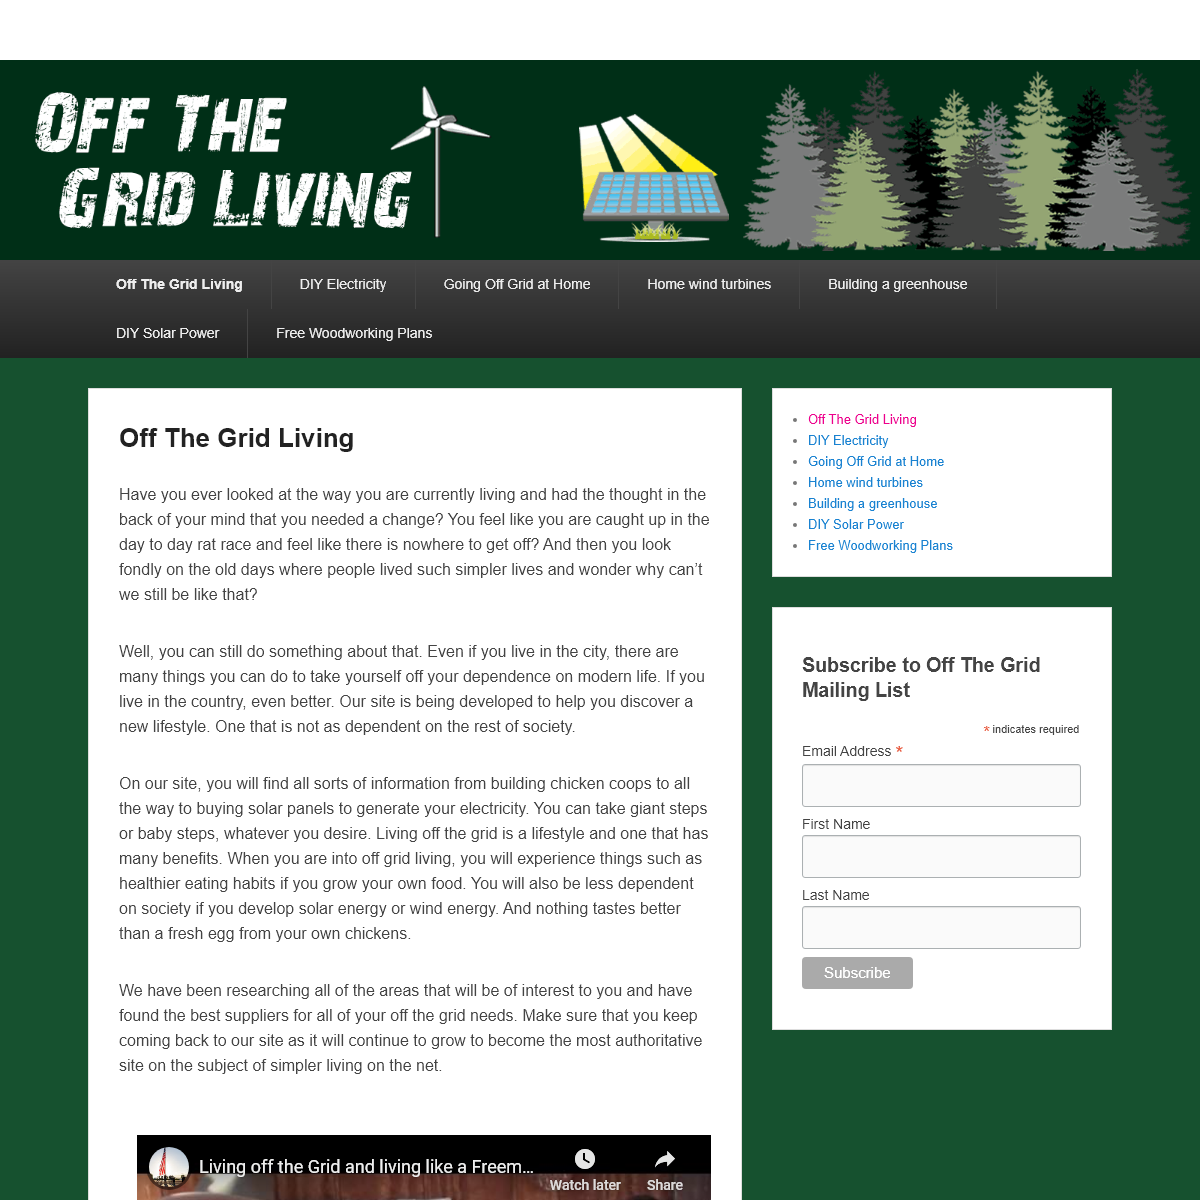 Off The Grid Living - Off The Grid Living